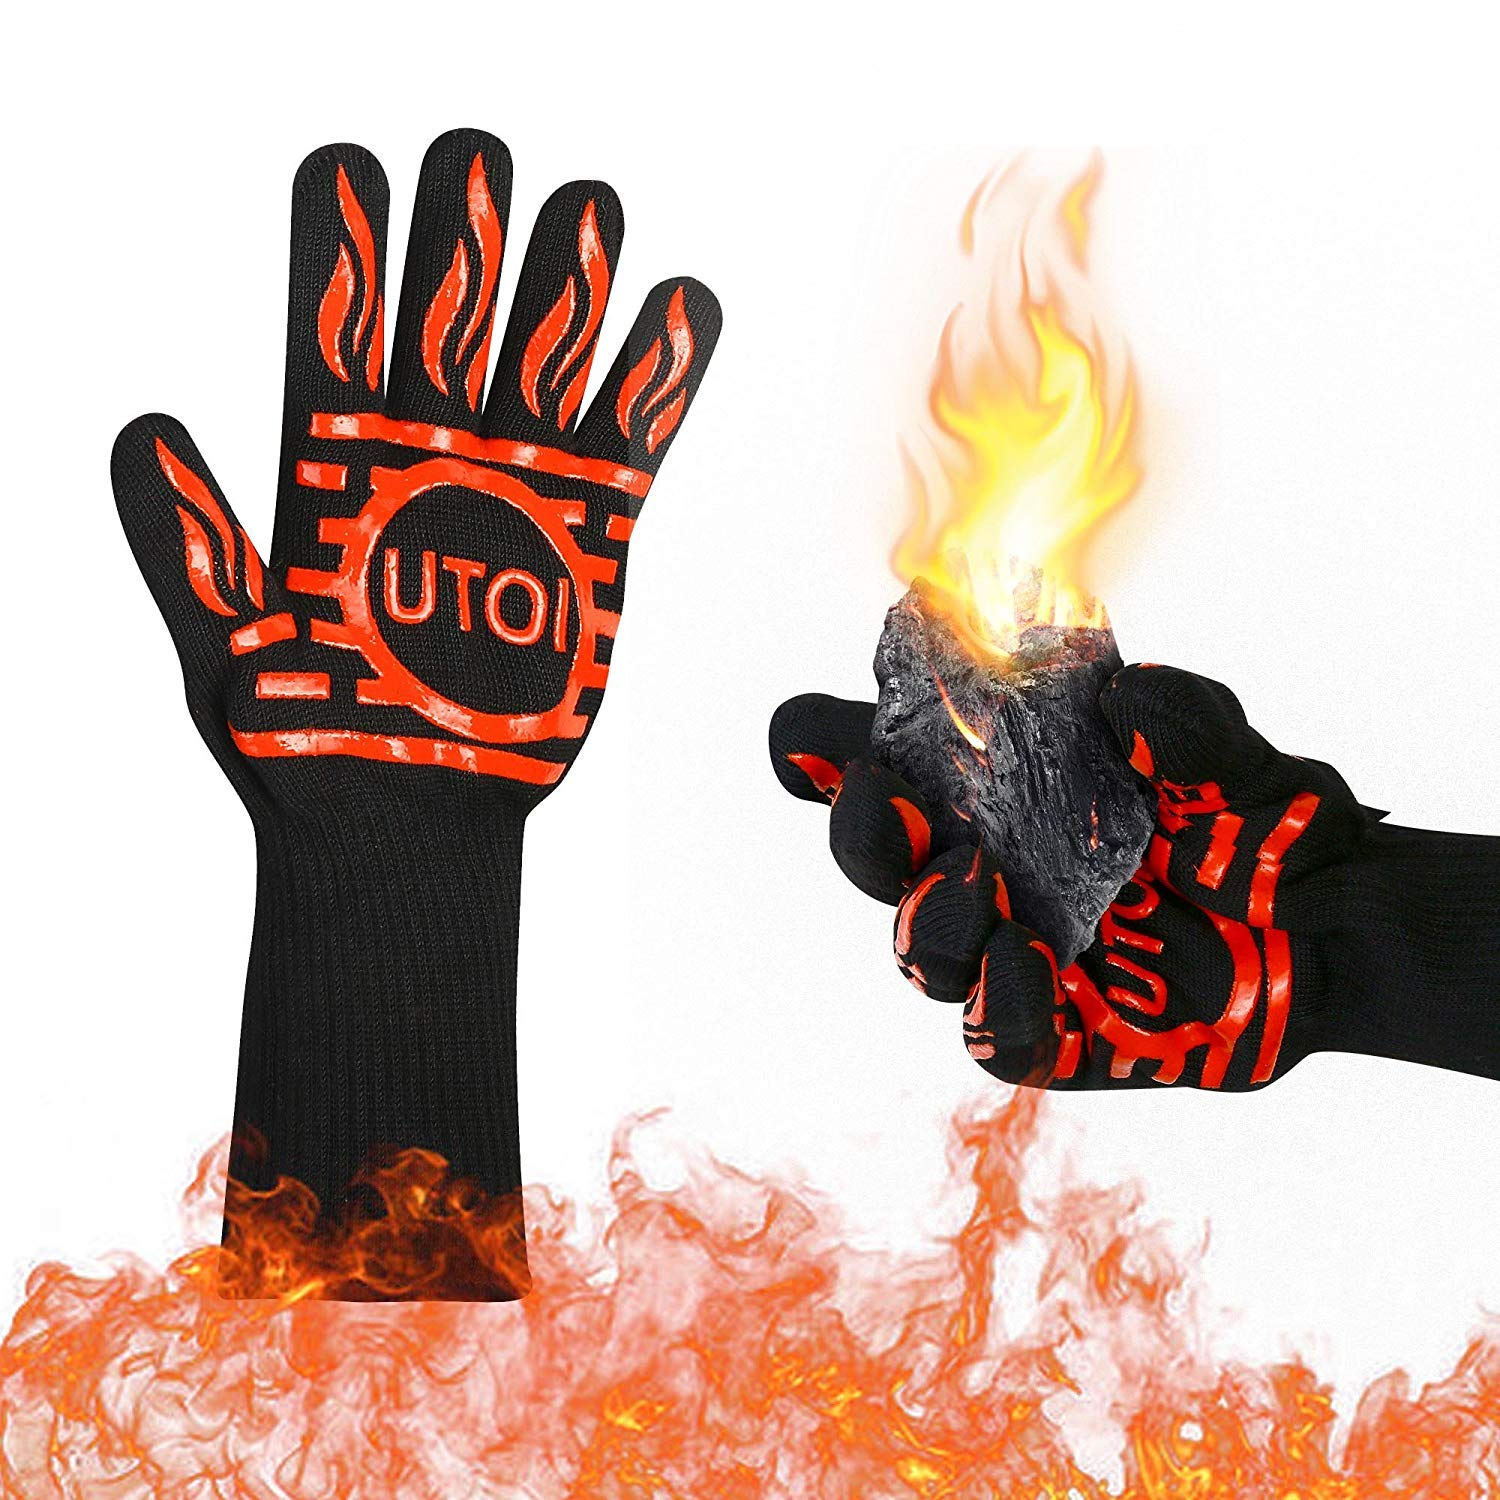 UTOI BBQ Grill Gloves, 1472°F Heat Resistant Barbecue Gloves Oven Mitts for Kitchen Garden BBQ Grilling and Outdoor Cooking Campfire, EN407 Certified, 1 Pair 13 inch Long Extra Forearm Protection by UTOI